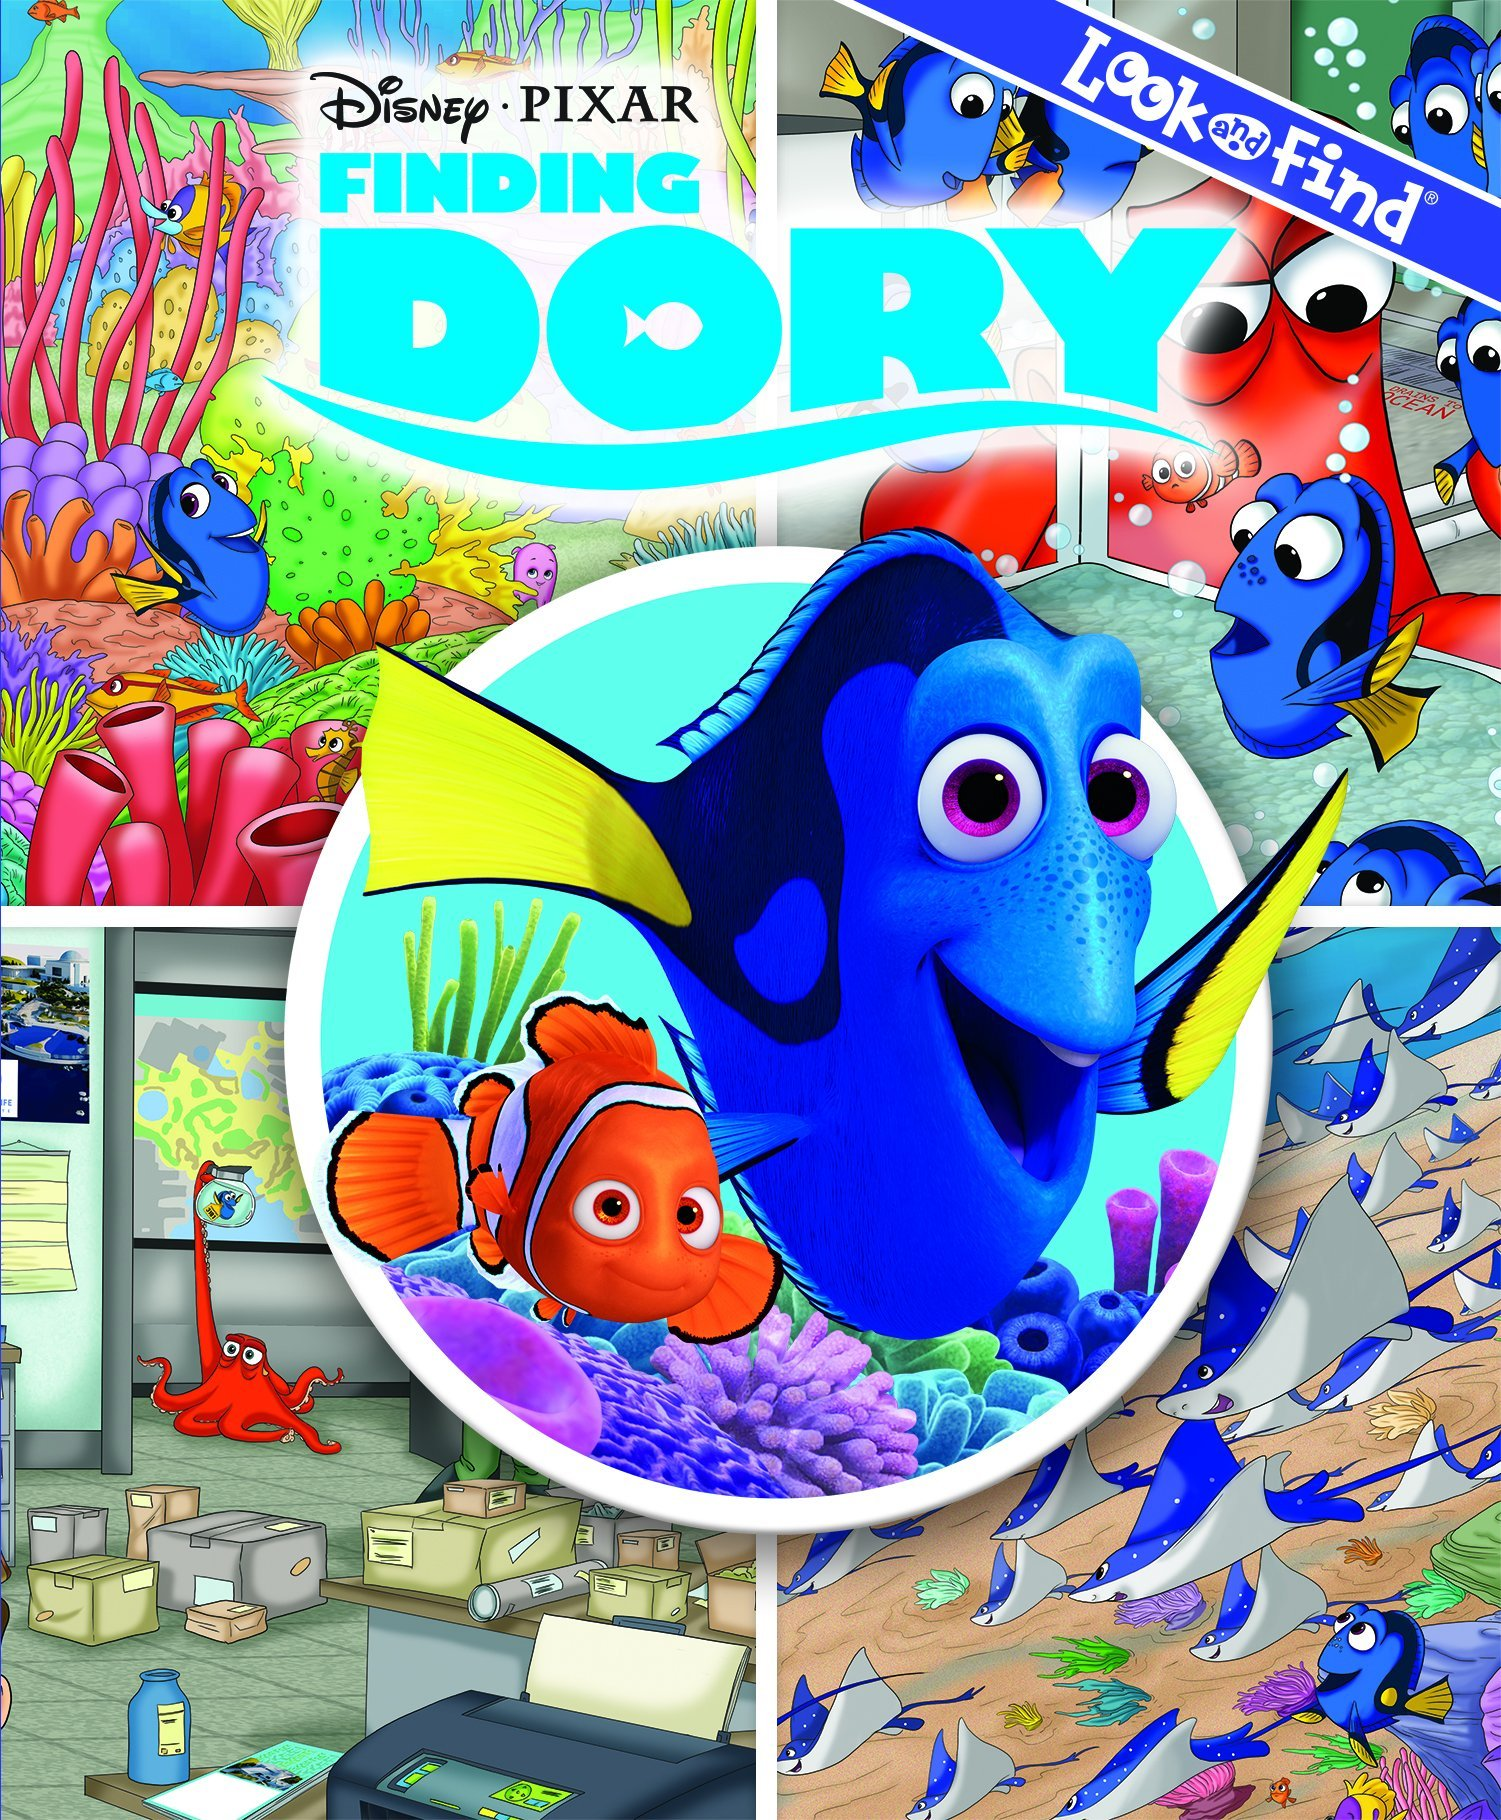 Disney Pixar Finding Dory Look And Find Book Hardcover PiKids Media Phoenix International